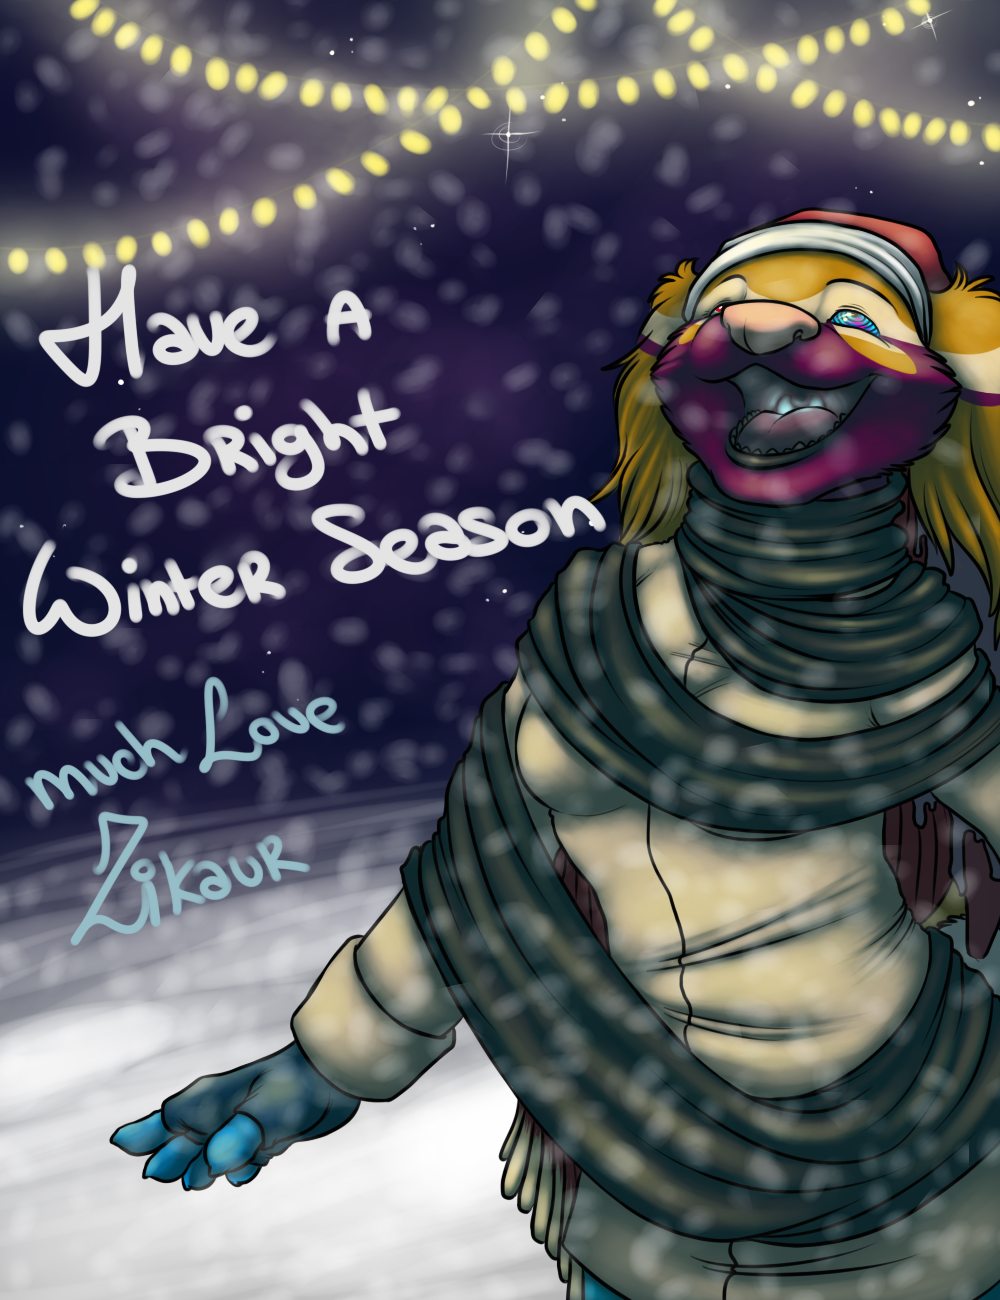 Winter Season Wishes